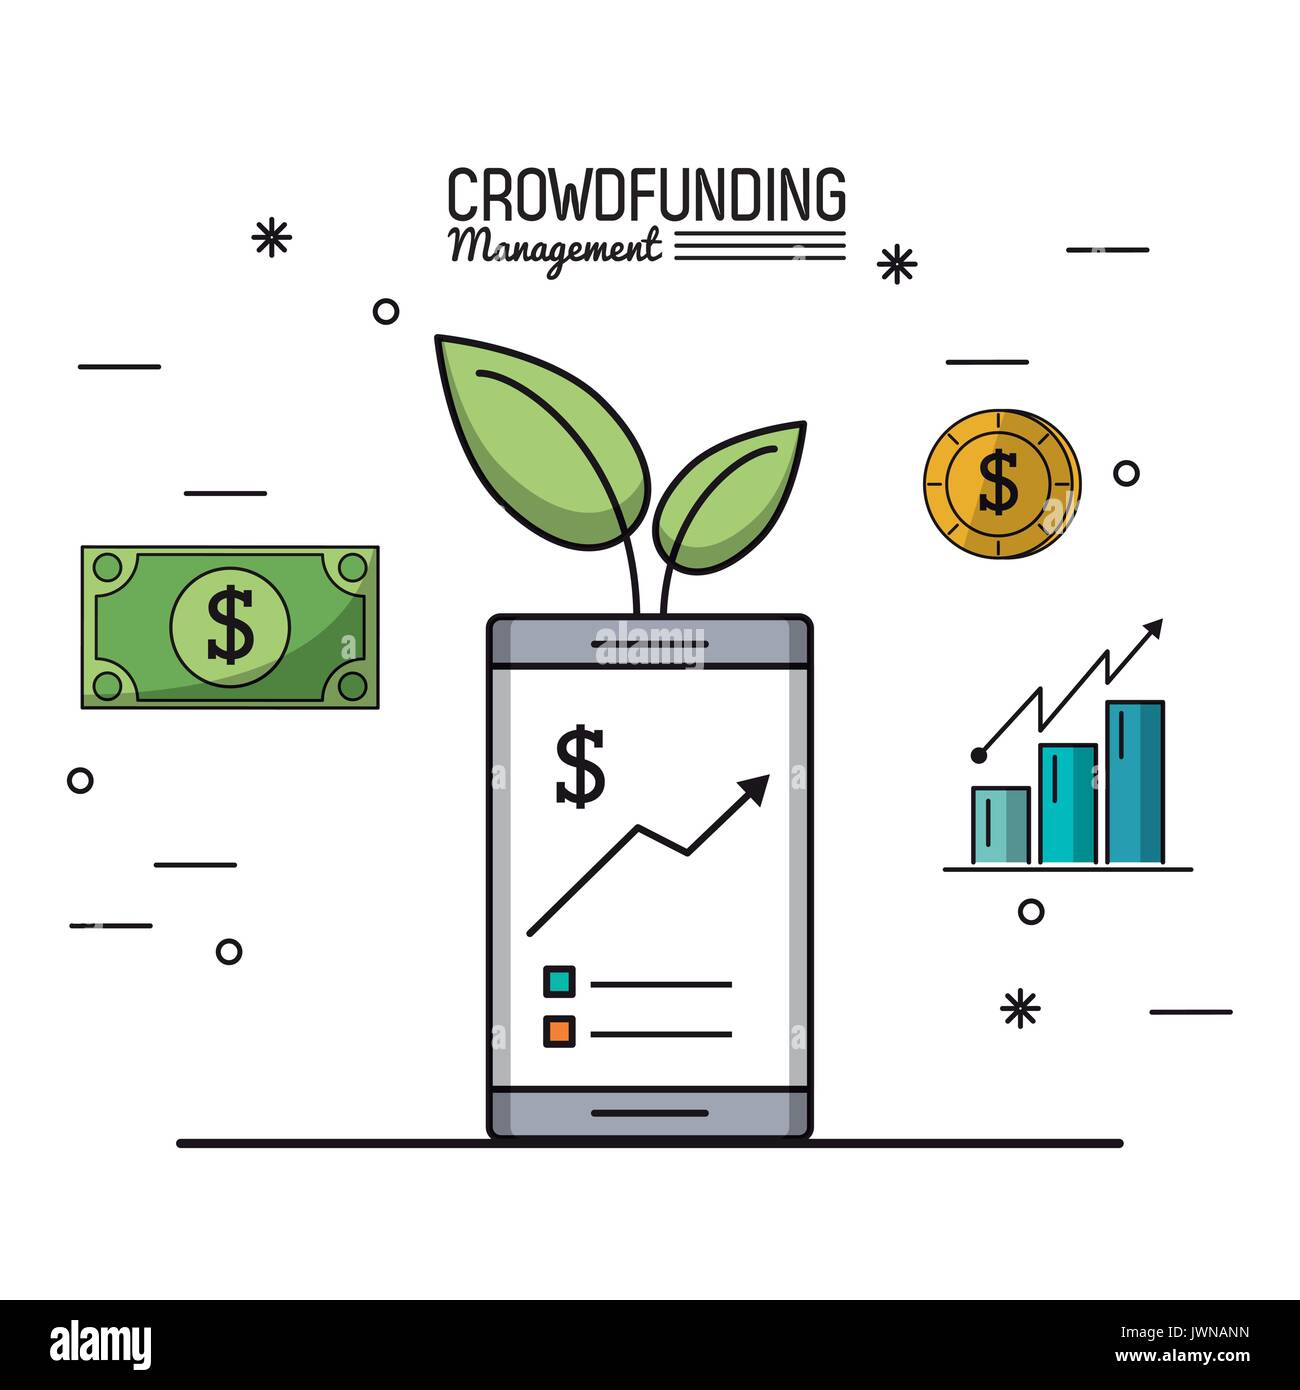 colorful poster of crowd funding management with smartphone and economic growing graphs - Stock Image